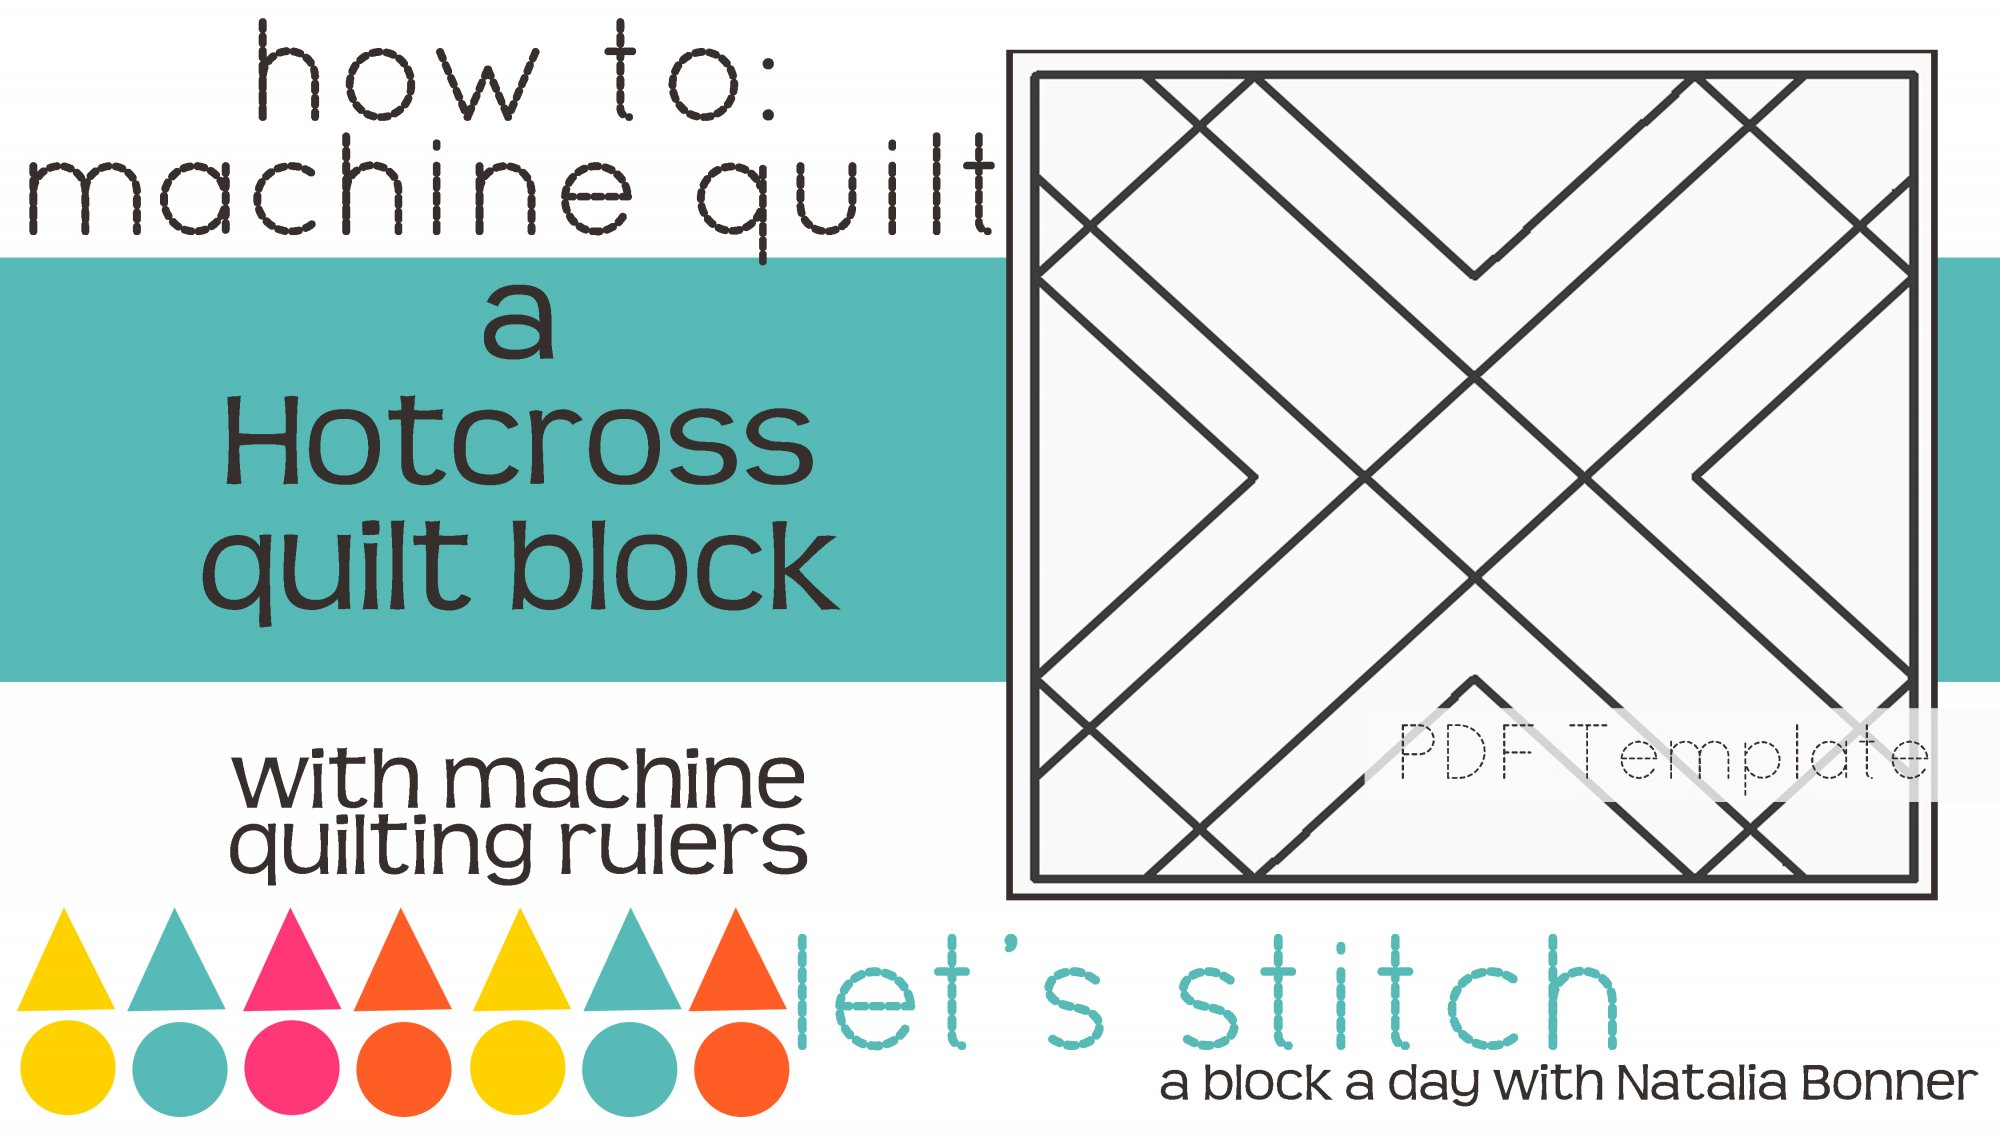 Let's Stitch - A Block a Day With Natalia Bonner - PDF - Hotcross